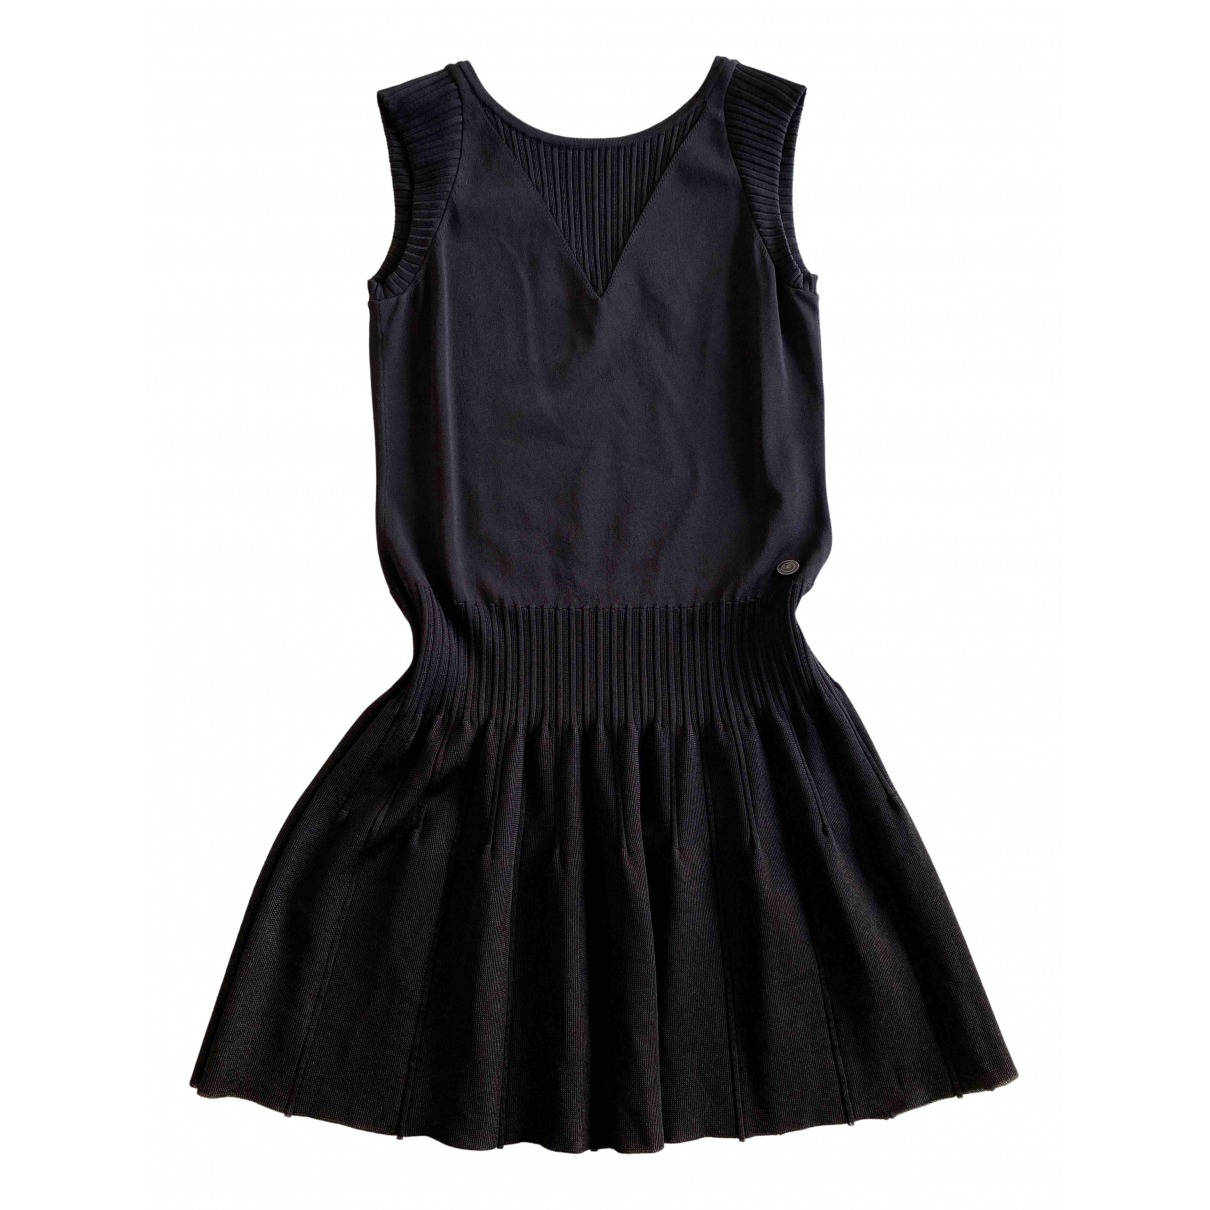 Chanel \N Black dress for Women 38 FR